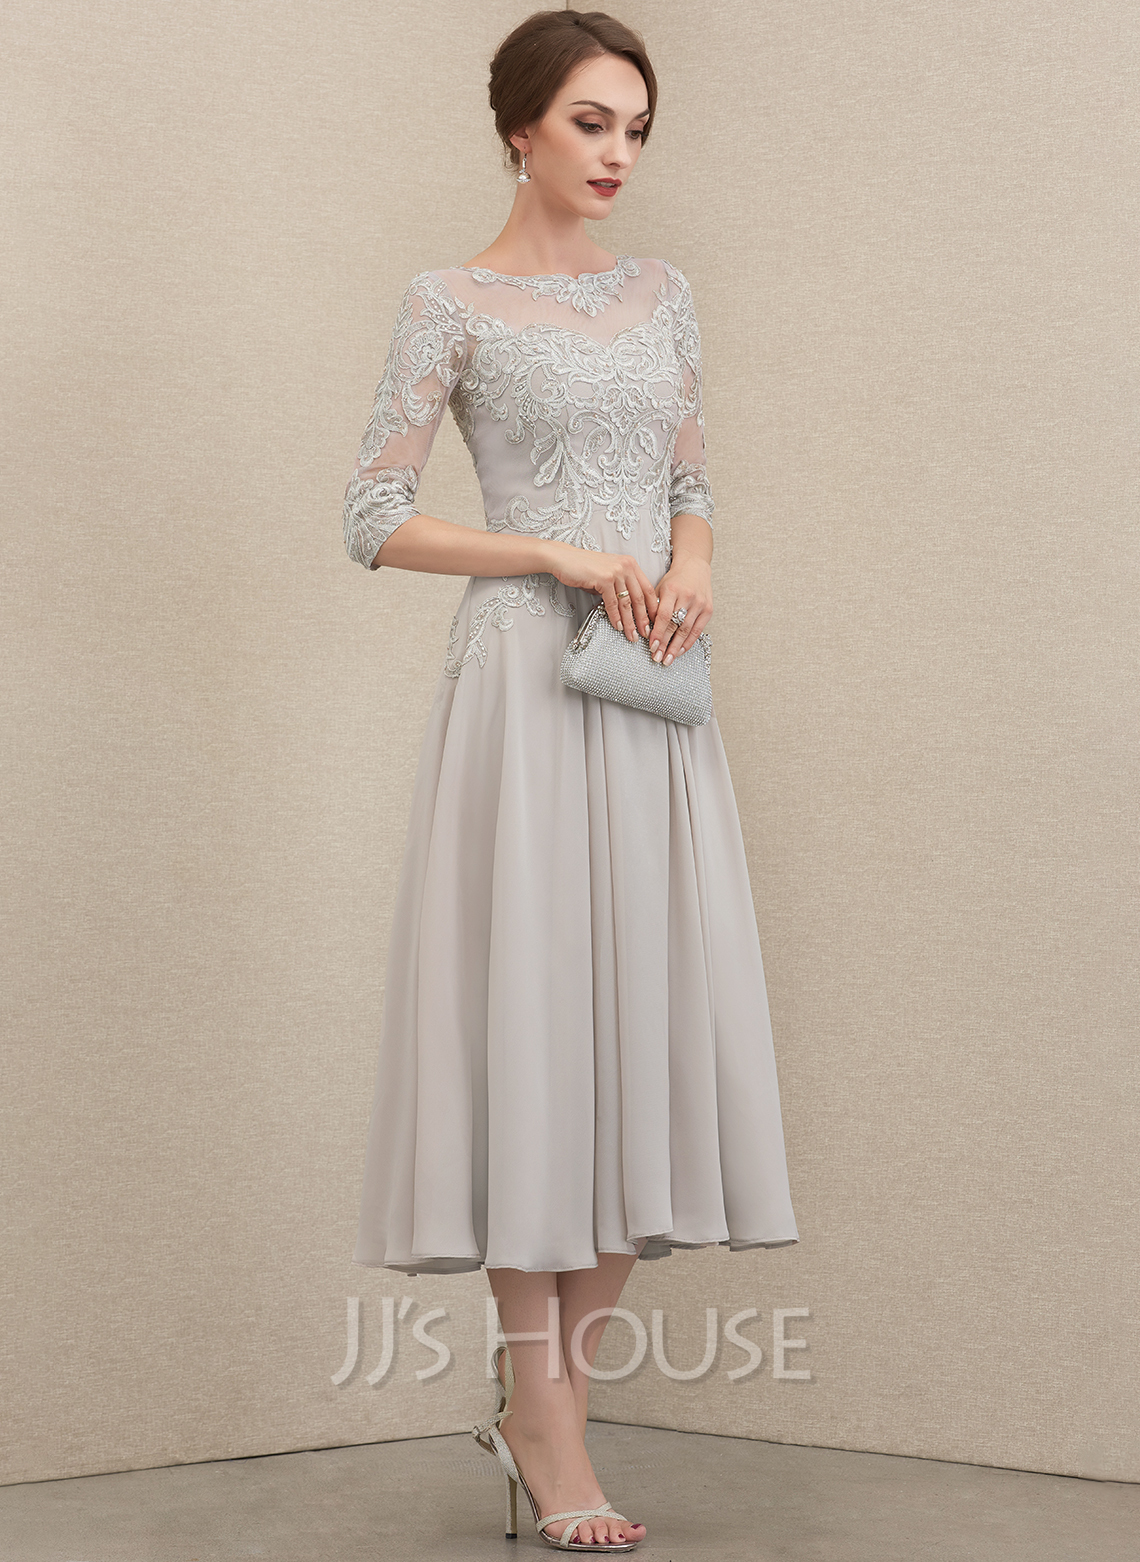 A-Line Scoop Neck Tea-Length Chiffon Lace Evening Dress With Beading Sequins